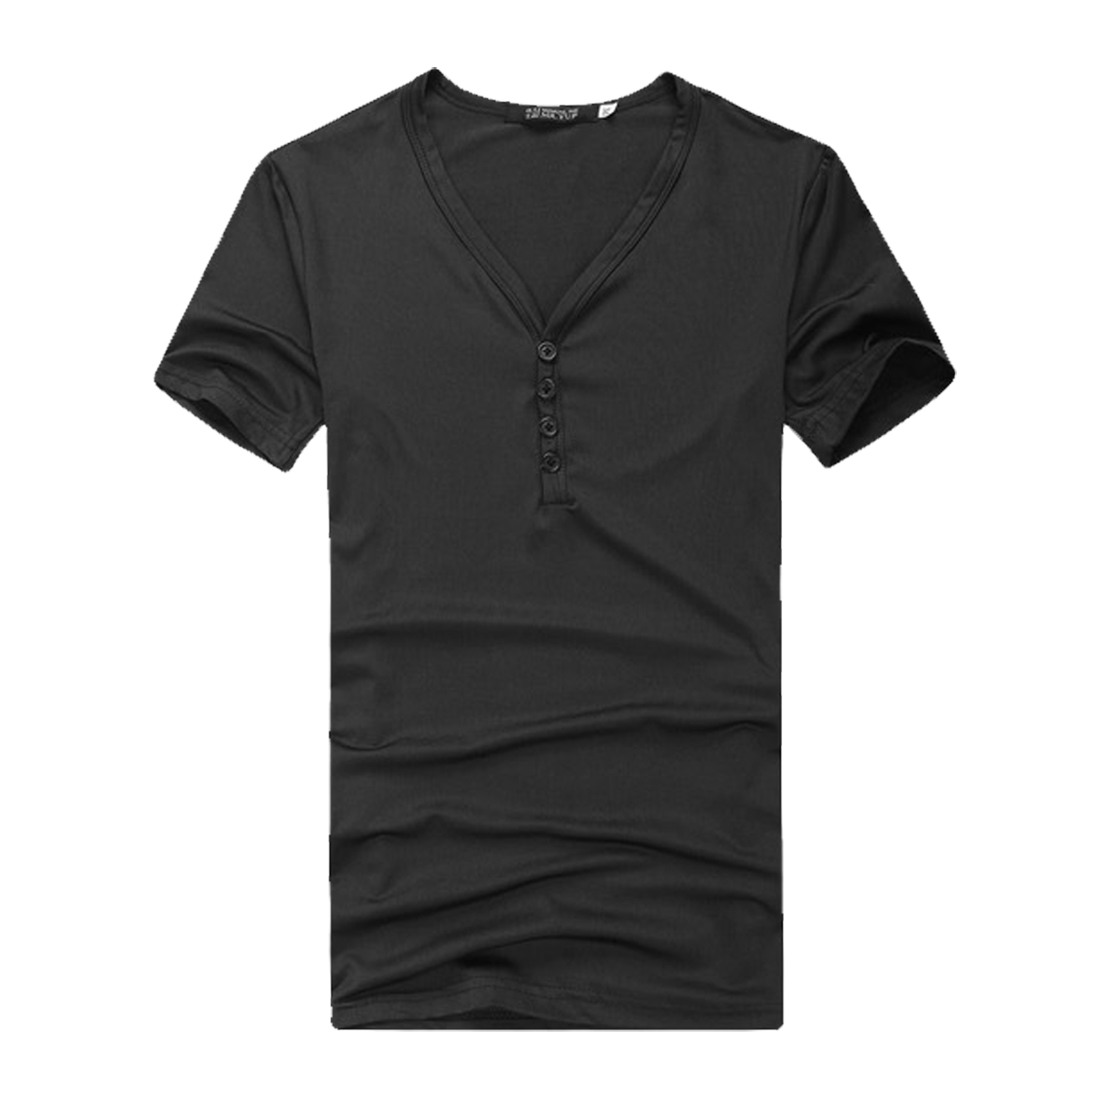 Men Black Stylish Short Sleve V-neck Solid Color Leisure Tee Shirt M